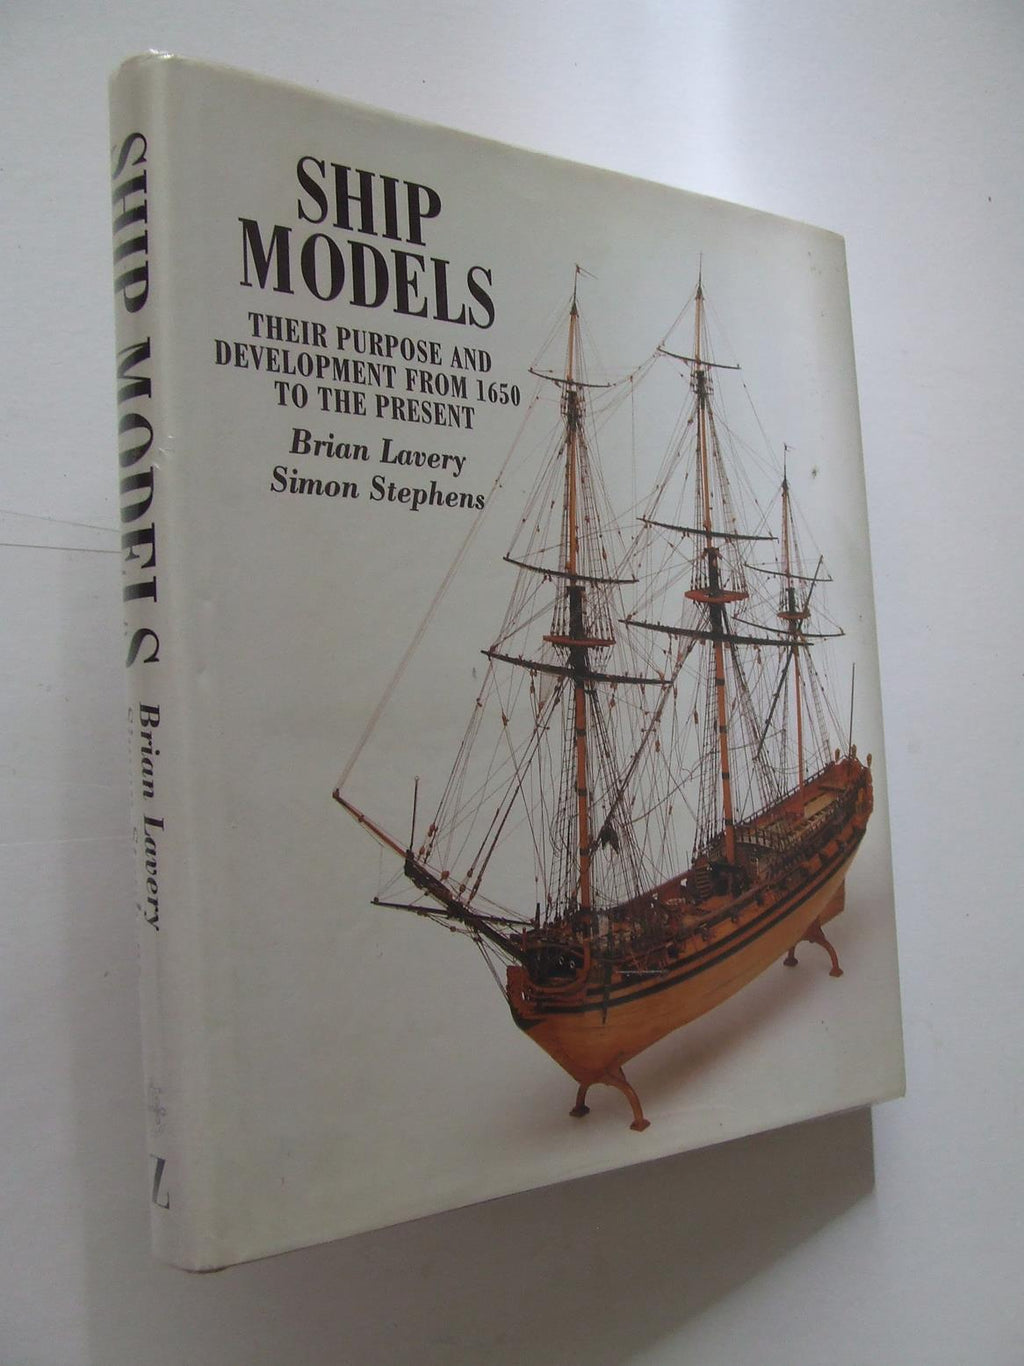 Ship Models, their purpose and development from 1650 to the present